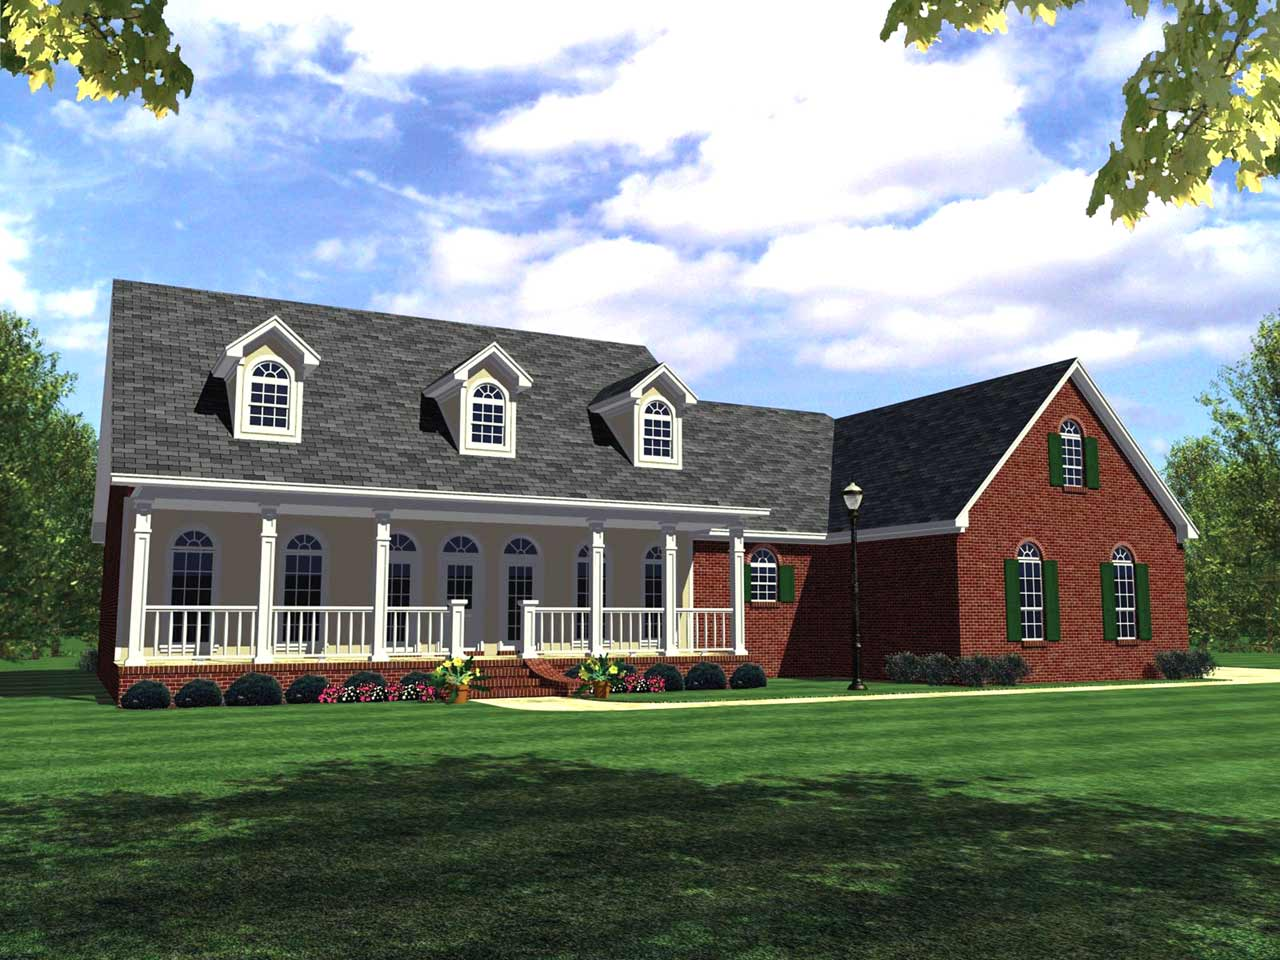 Southern Style House Plans Plan: 2-245